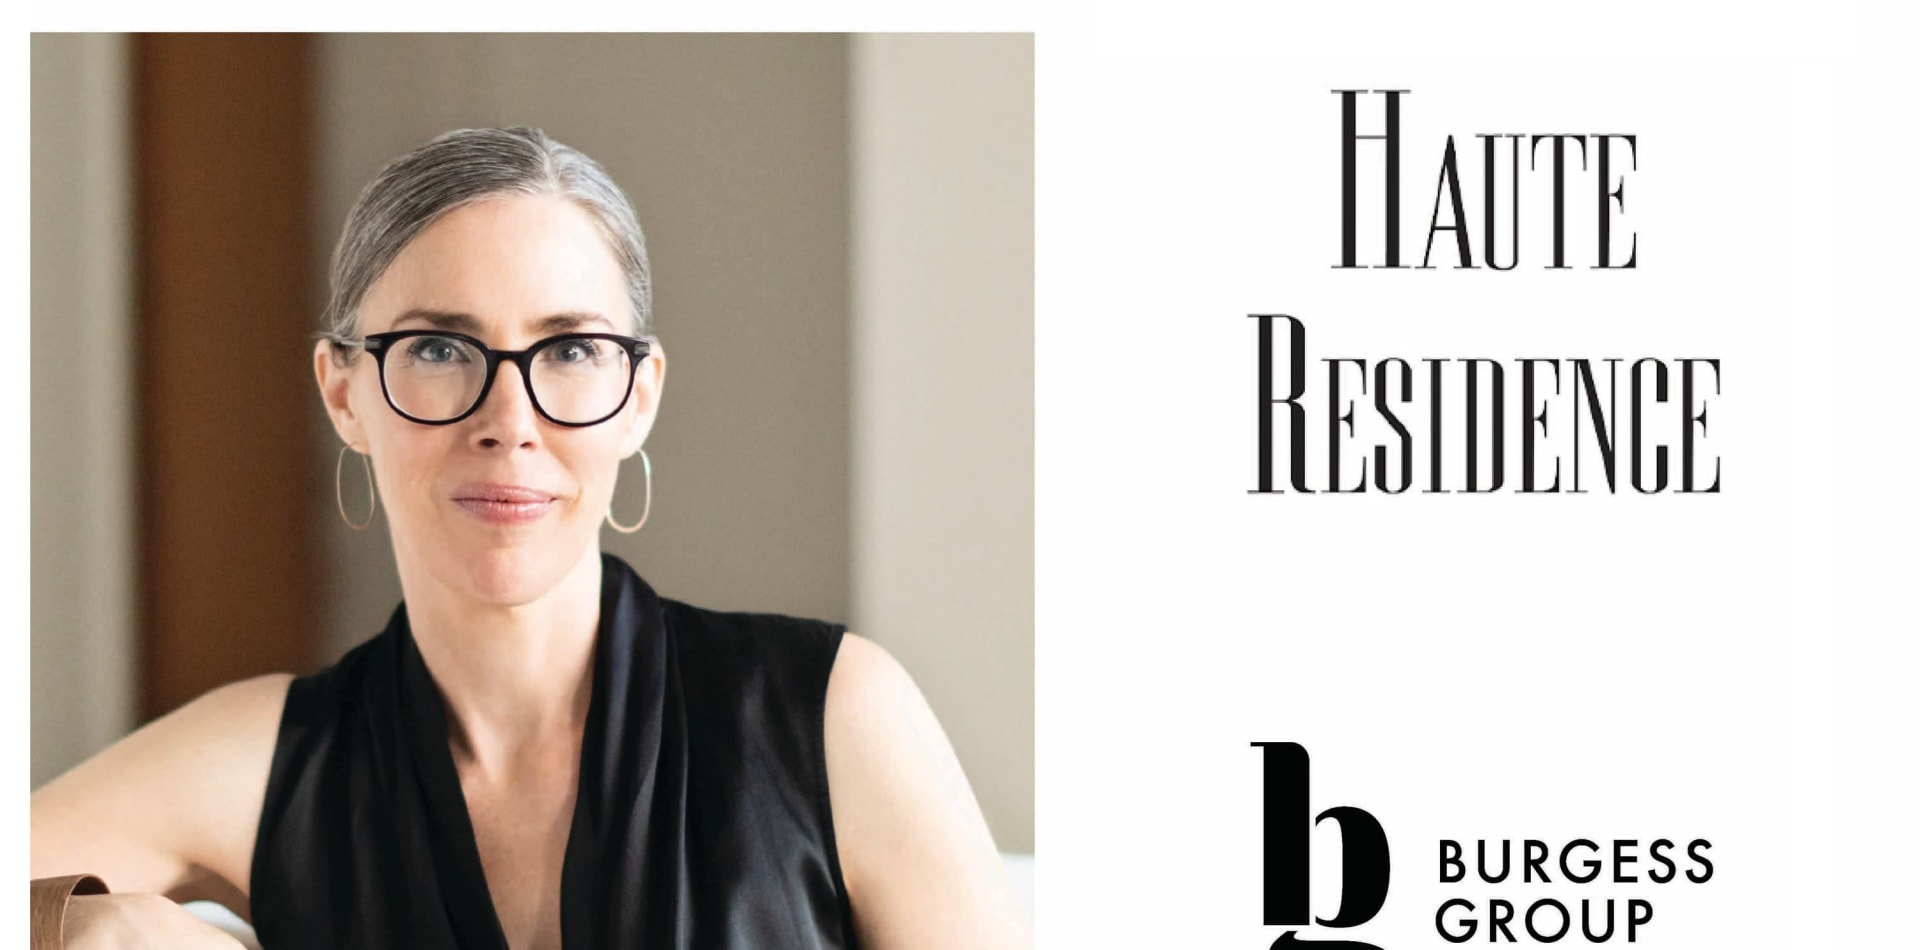 Yahoo Finance Announces Catherine Burgess + Haute Residence Exclusive Partnership